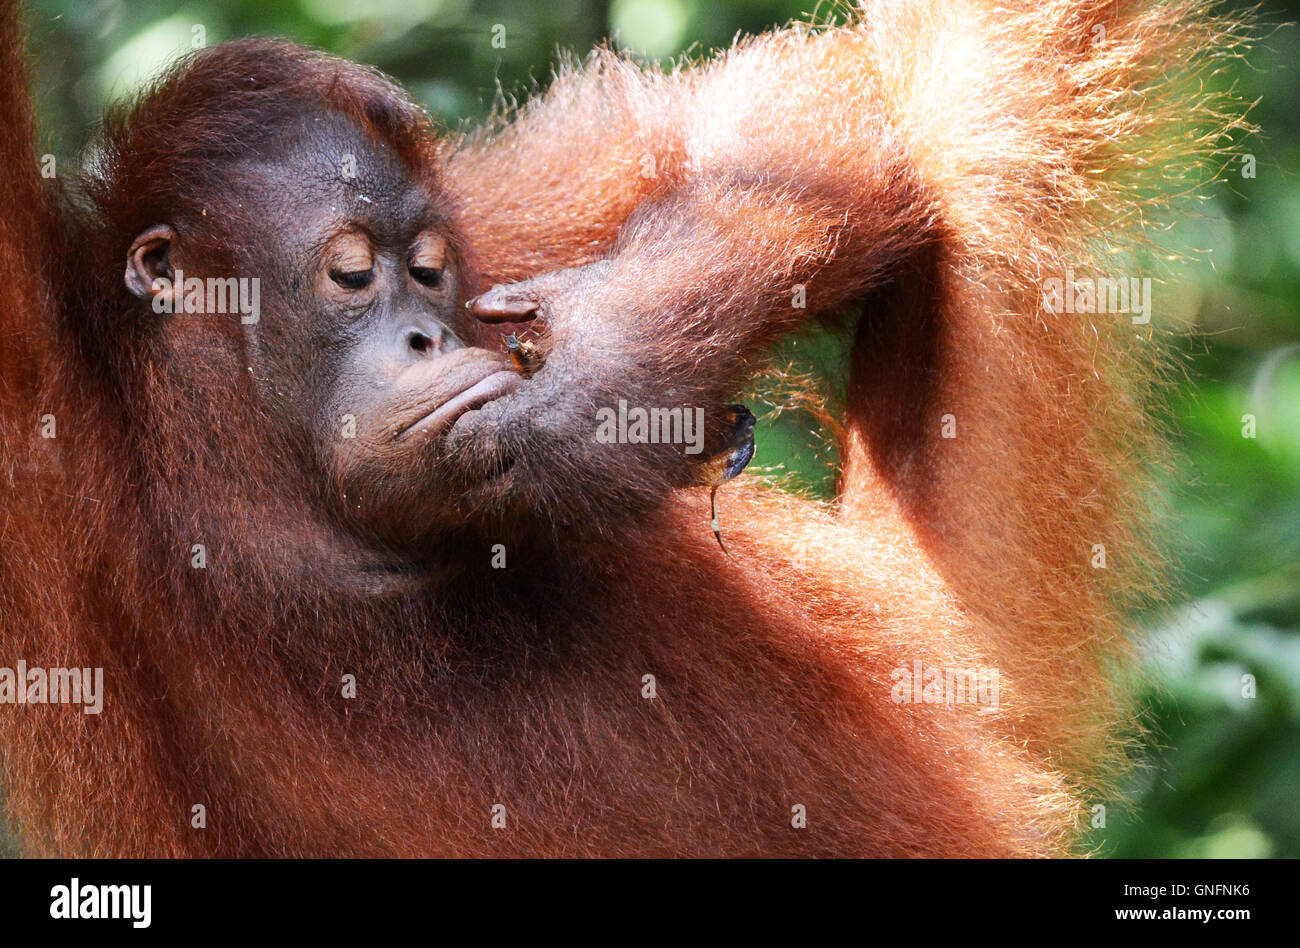 A cute young & playful Orangutan at the Semenggoh nature reserve near kuching, Sarawak. - Stock Image